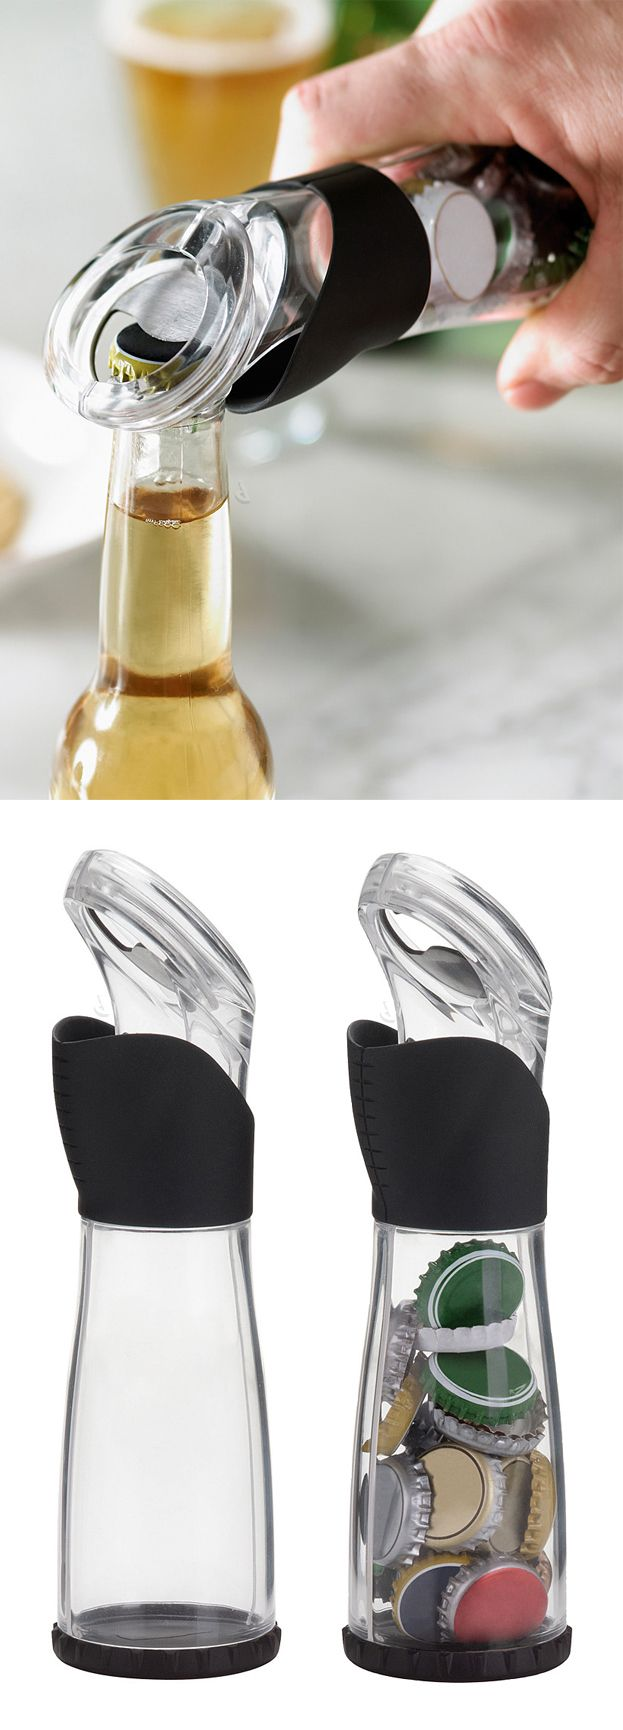 Bottle opener // collects the cap as you open your drink! Handy #product_design